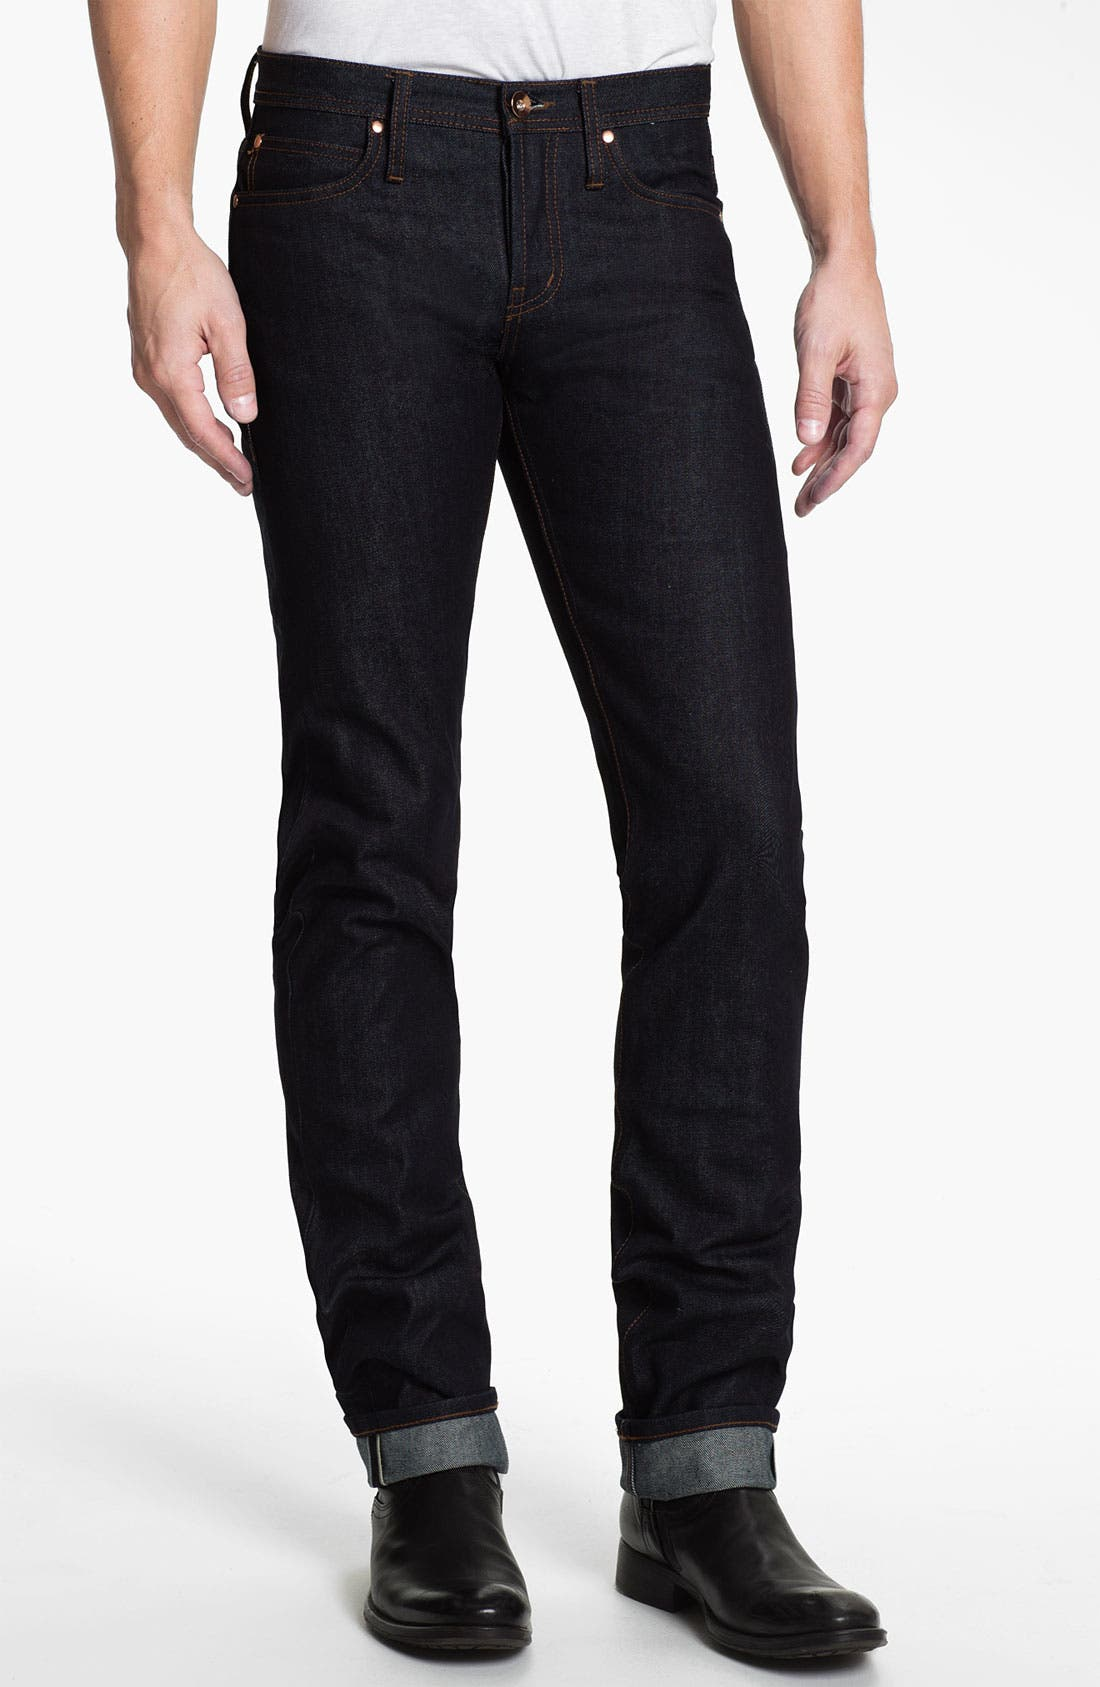 Main Image - The Unbranded Brand UB101 Skinny Fit Raw Selvedge Jeans (Indigo)